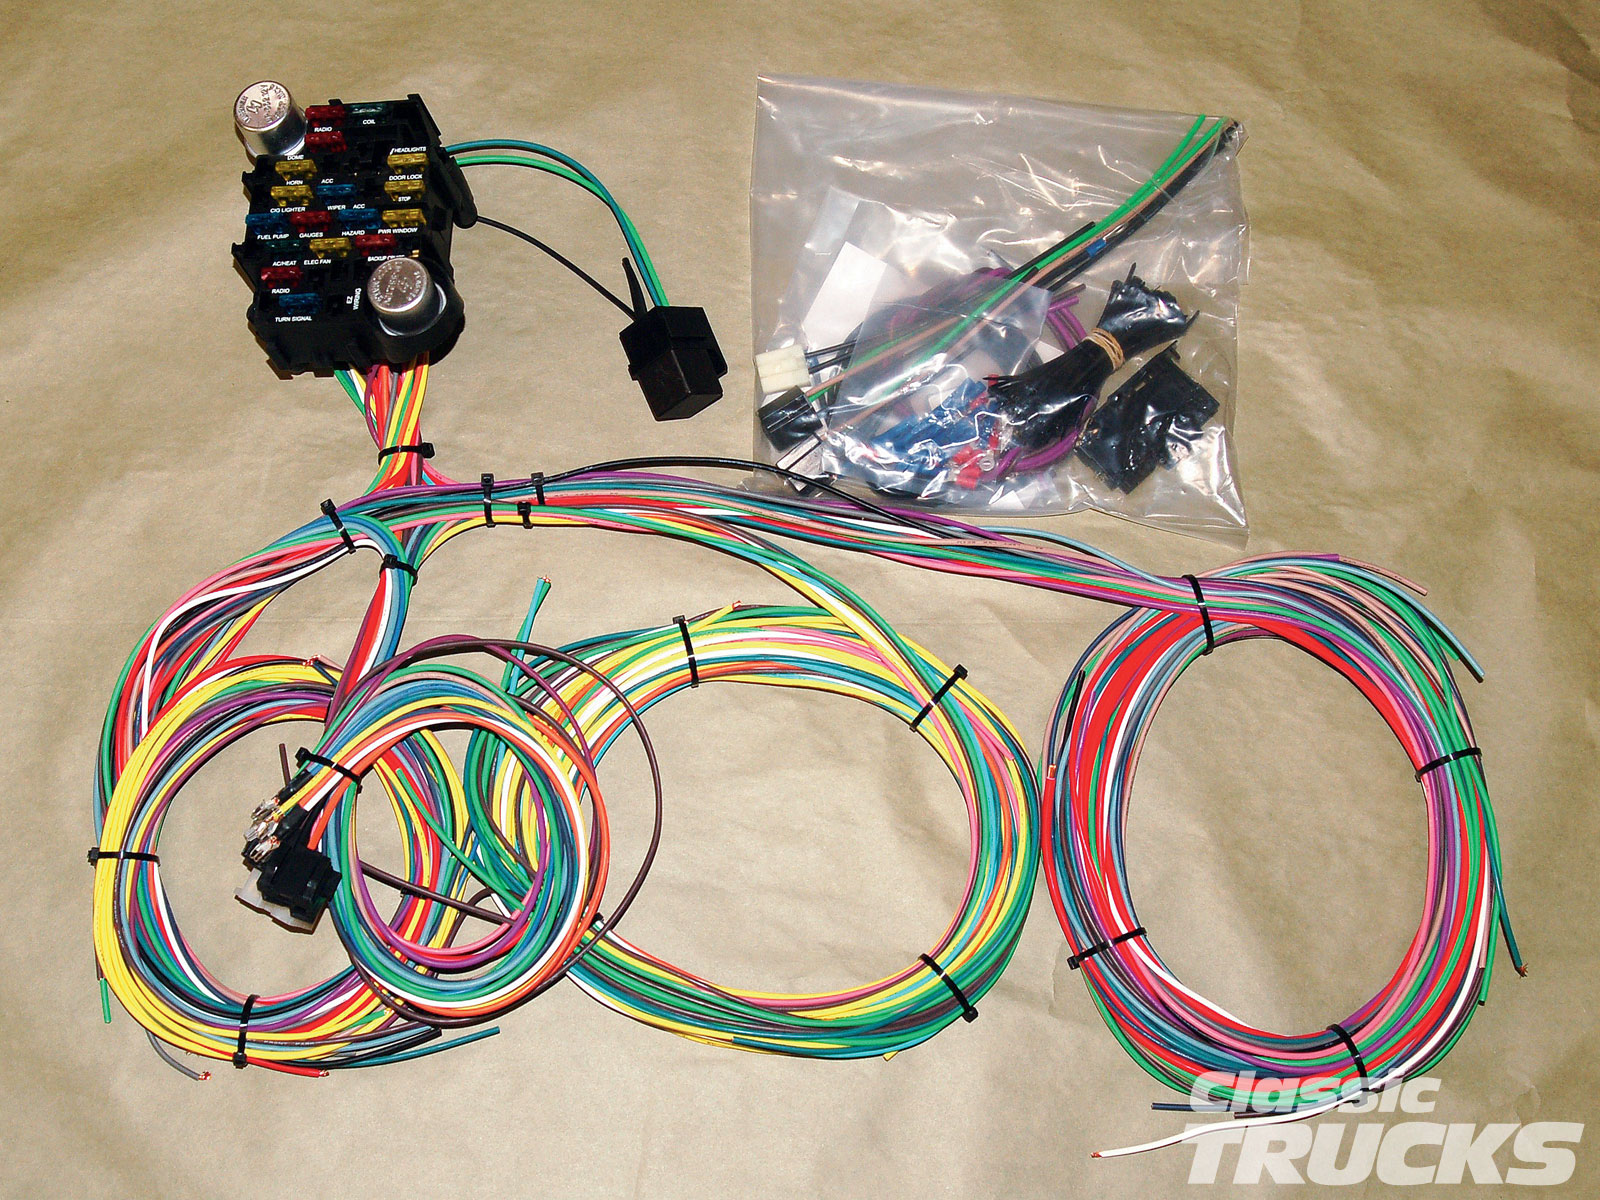 1010clt 02 o aftermarket wiring harness install kit?resize\\\=665%2C499 painless wiring harness australia tamahuproject org universal wiring harness australia at suagrazia.org